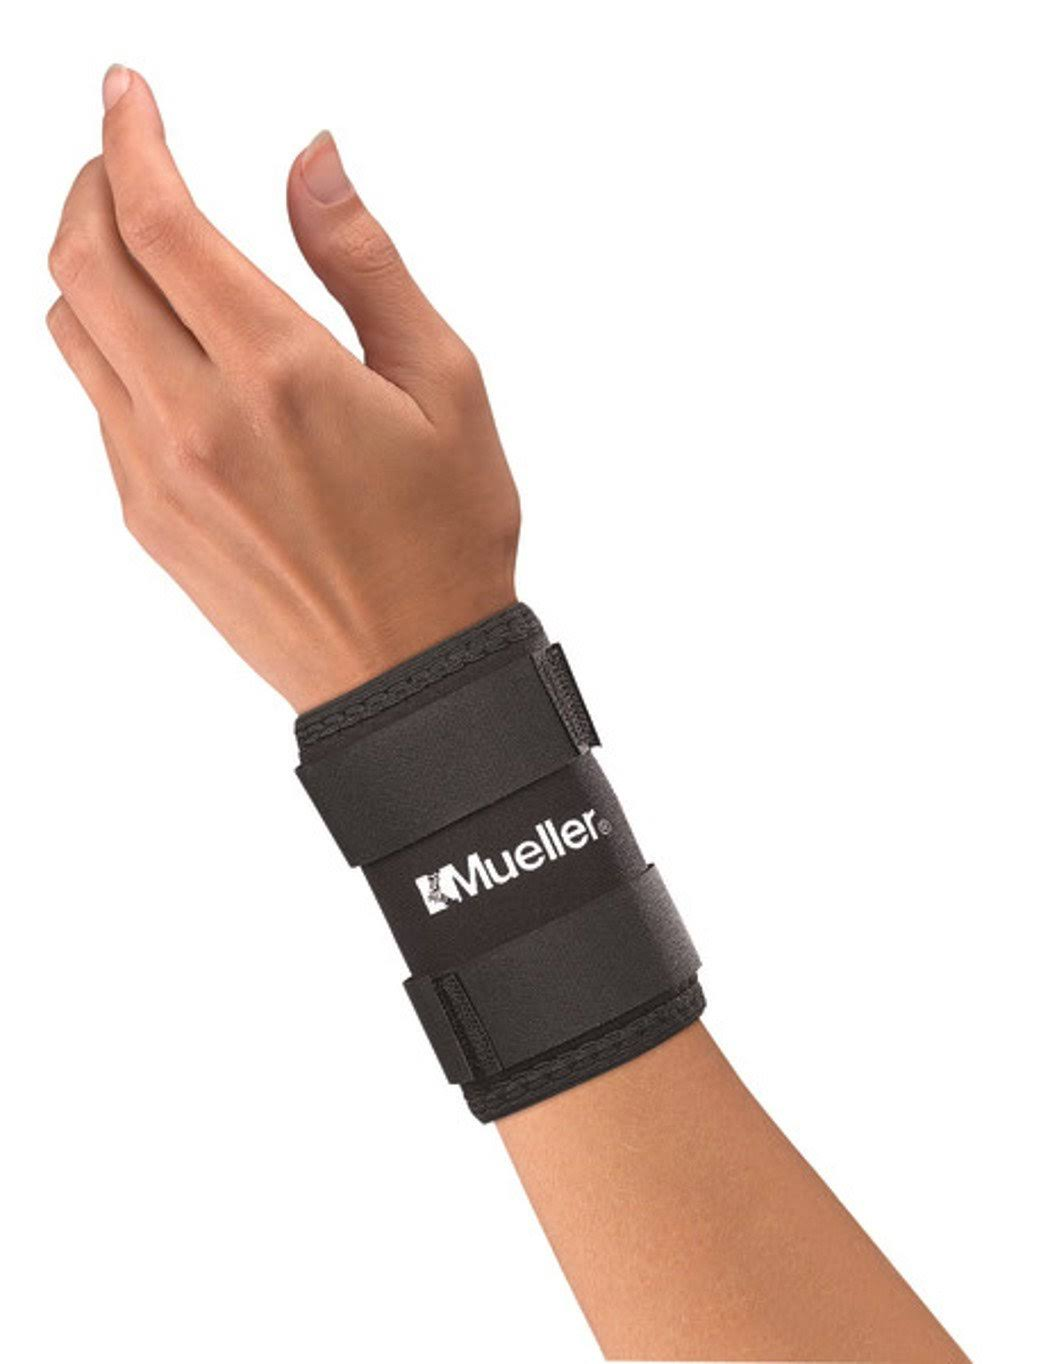 Mueller Neoprene Wrist Sleeve, Black, Medium